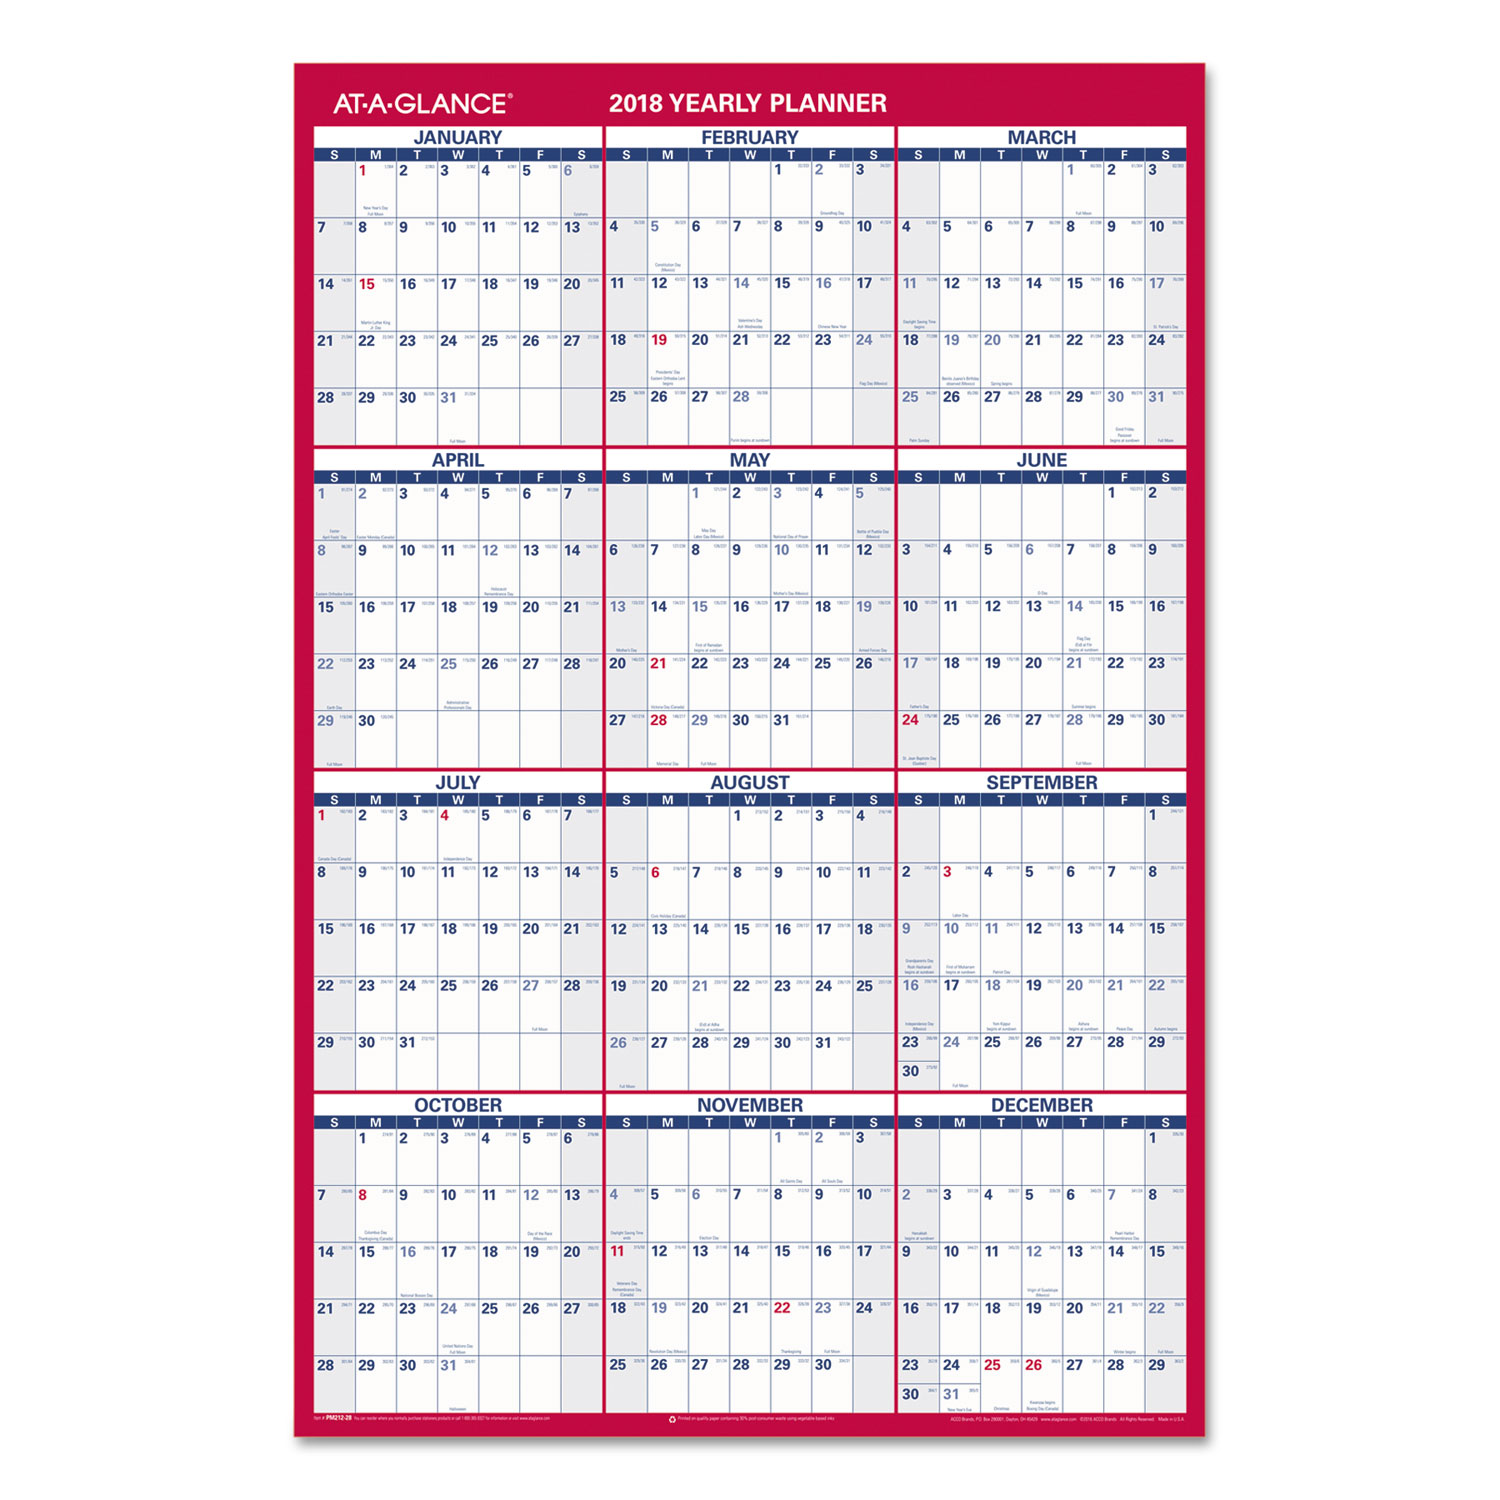 Calendar Vertical List : Vertical horizontal wall calendar by at a glance